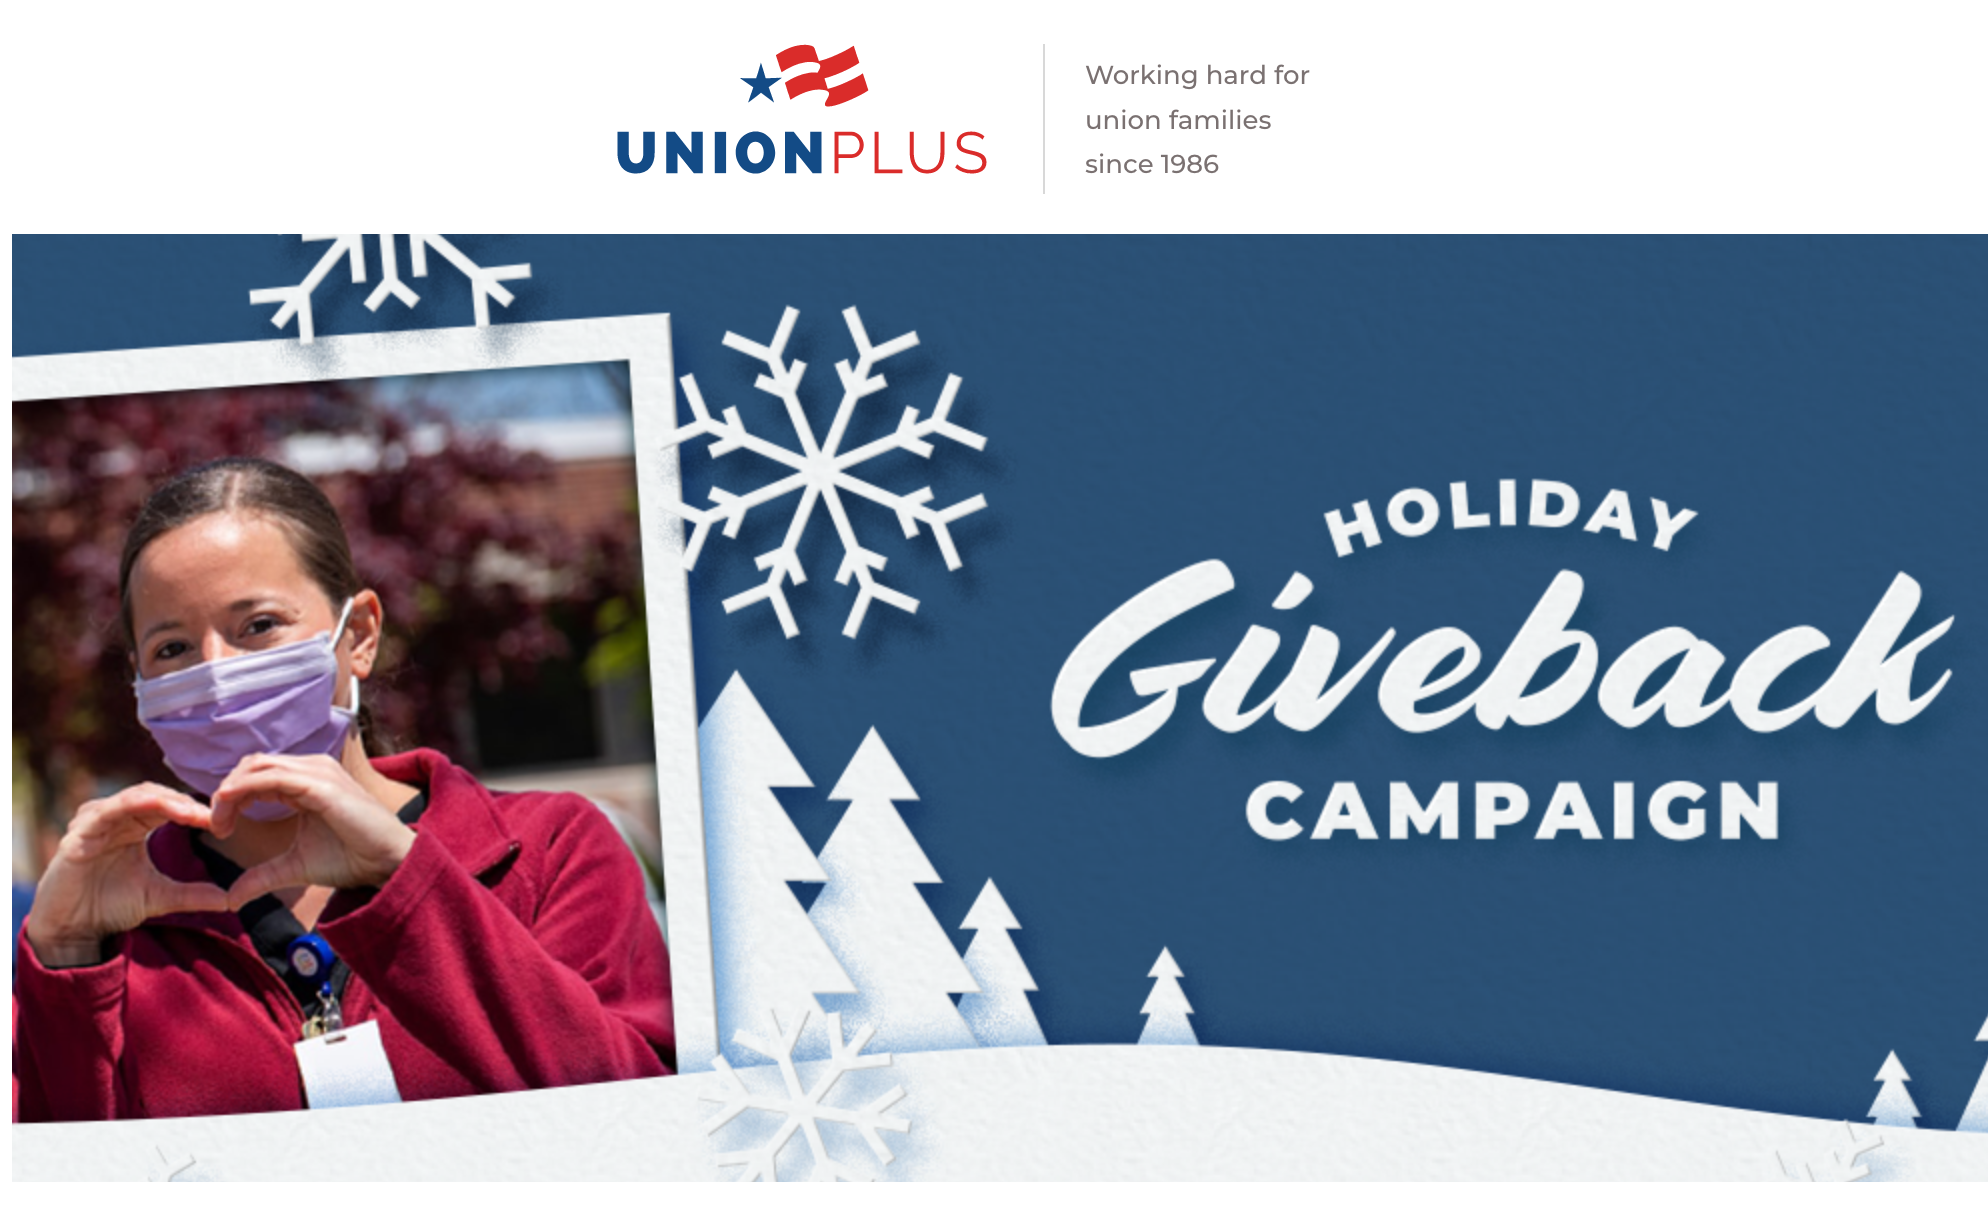 Members Selected During UnionPlus Holiday Giveback Included Two From TCU